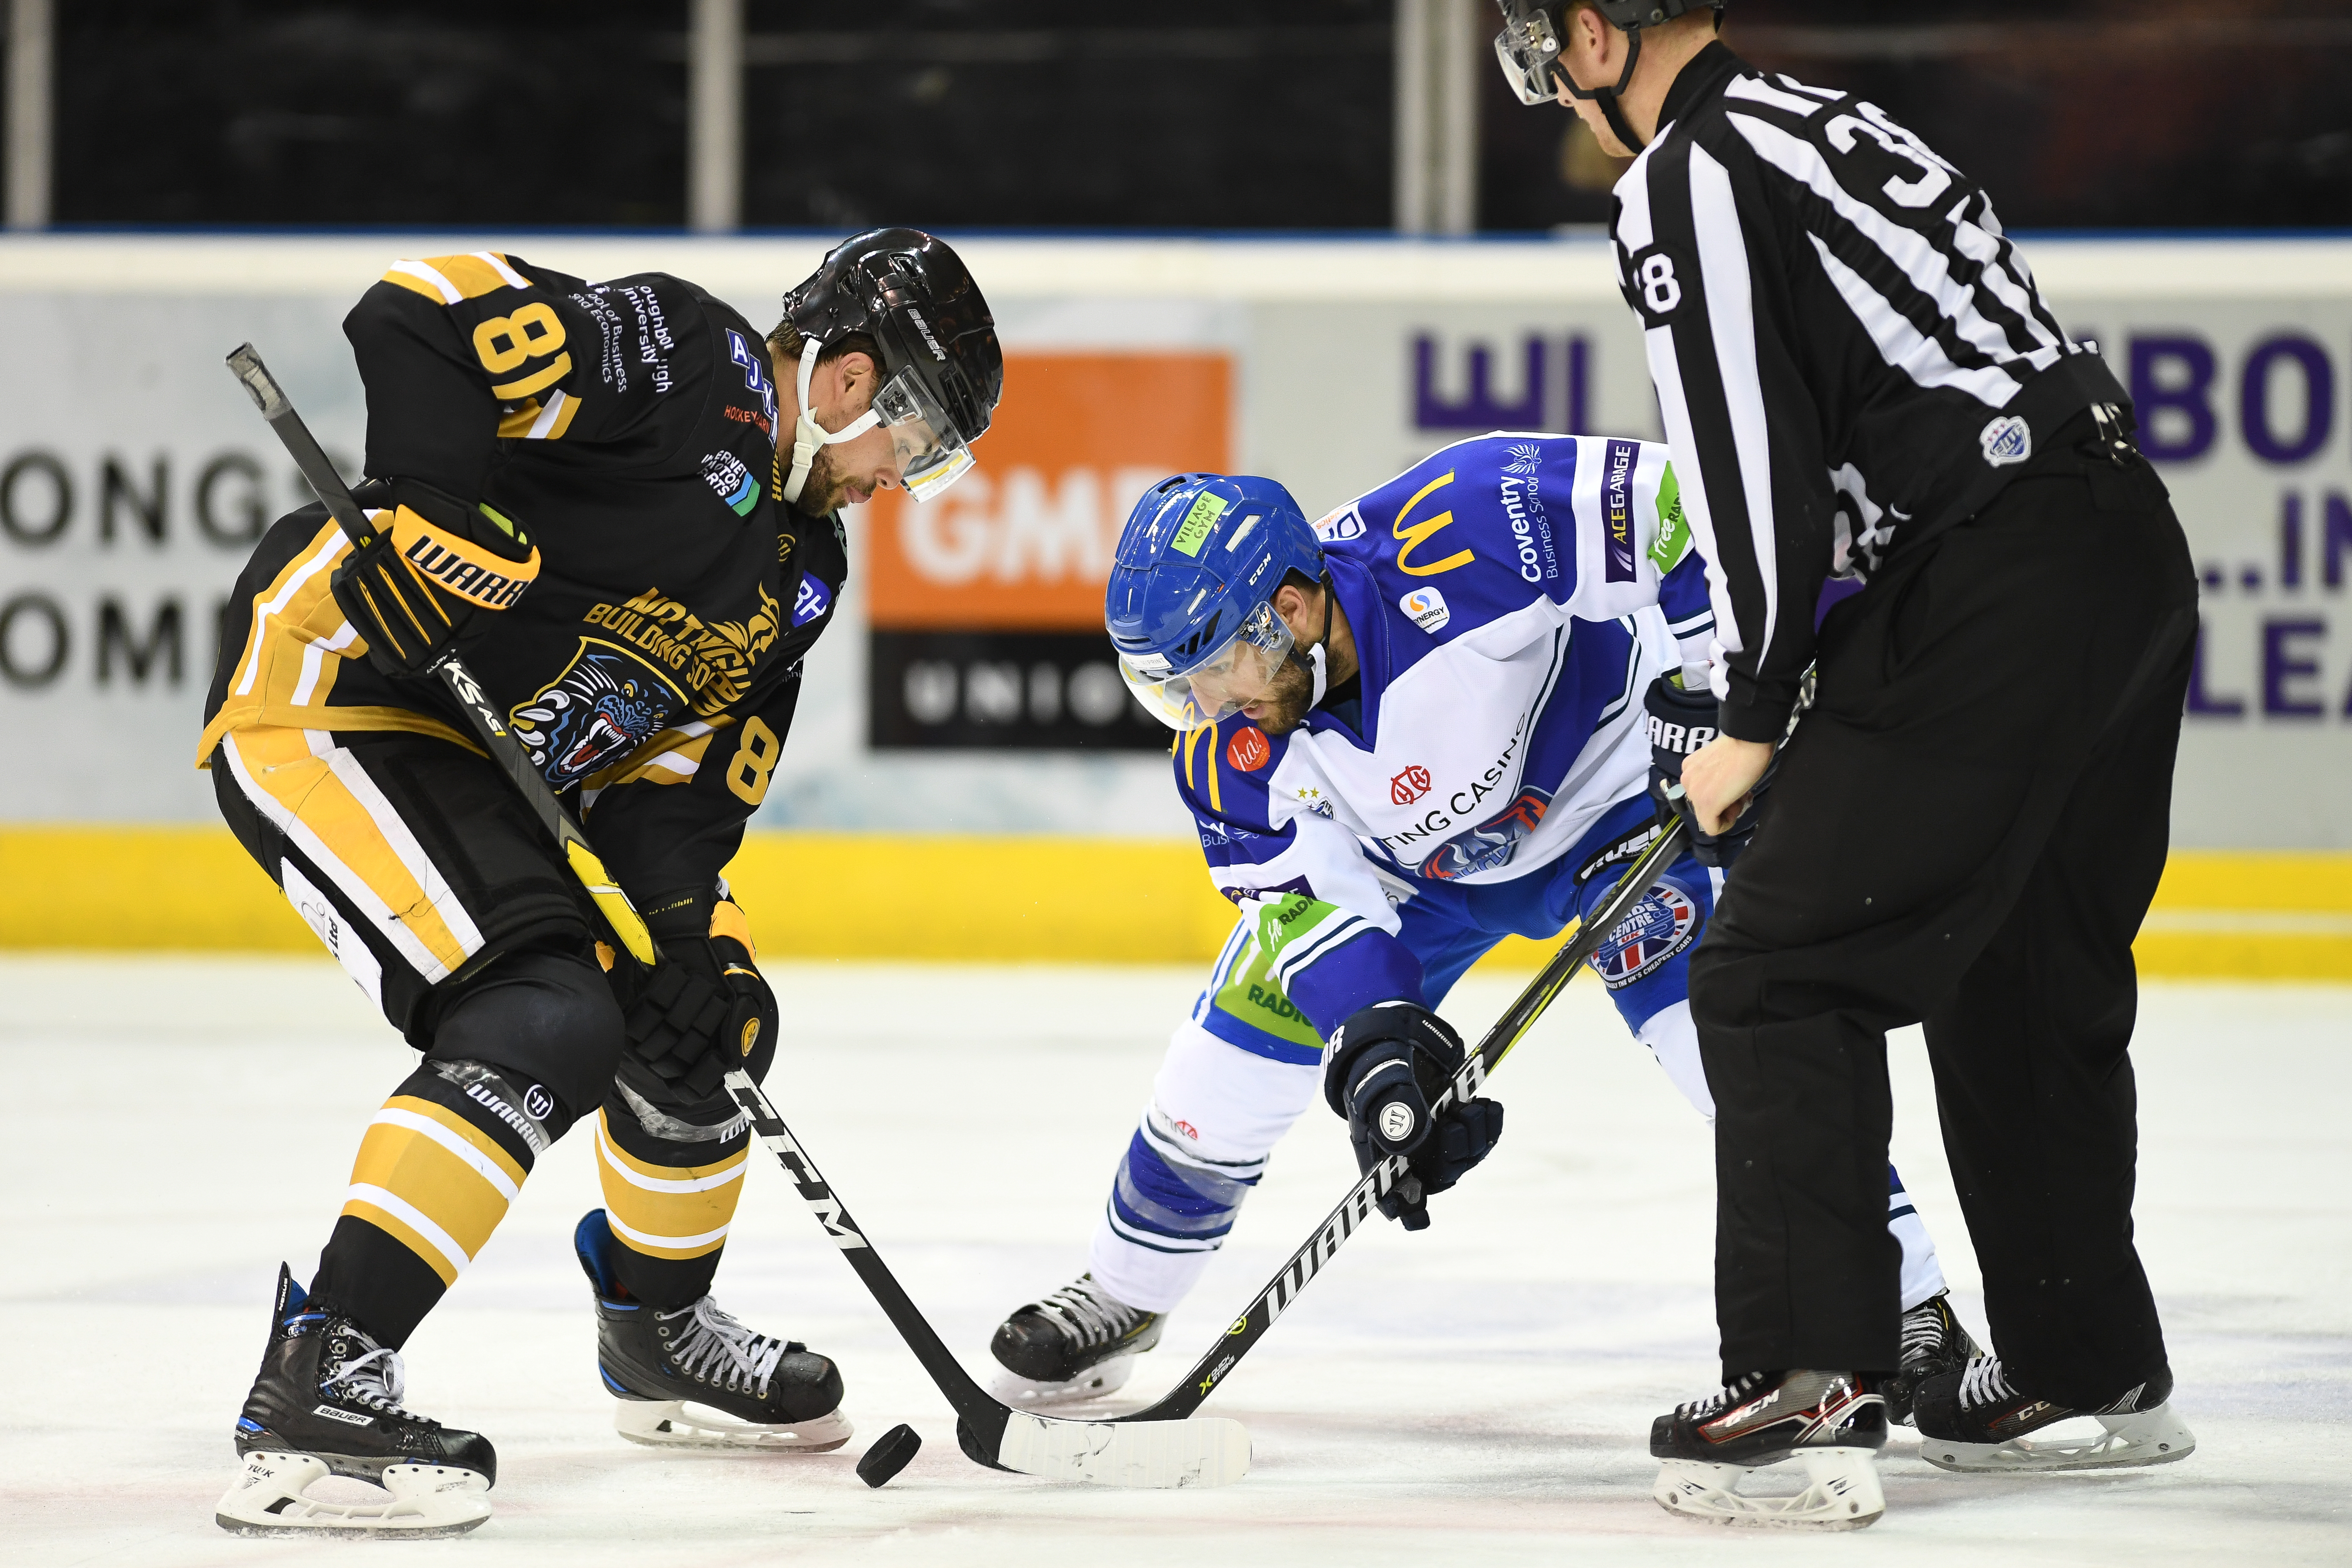 Panthers vs Blaze: Game day! - 20/02/19 Top Image